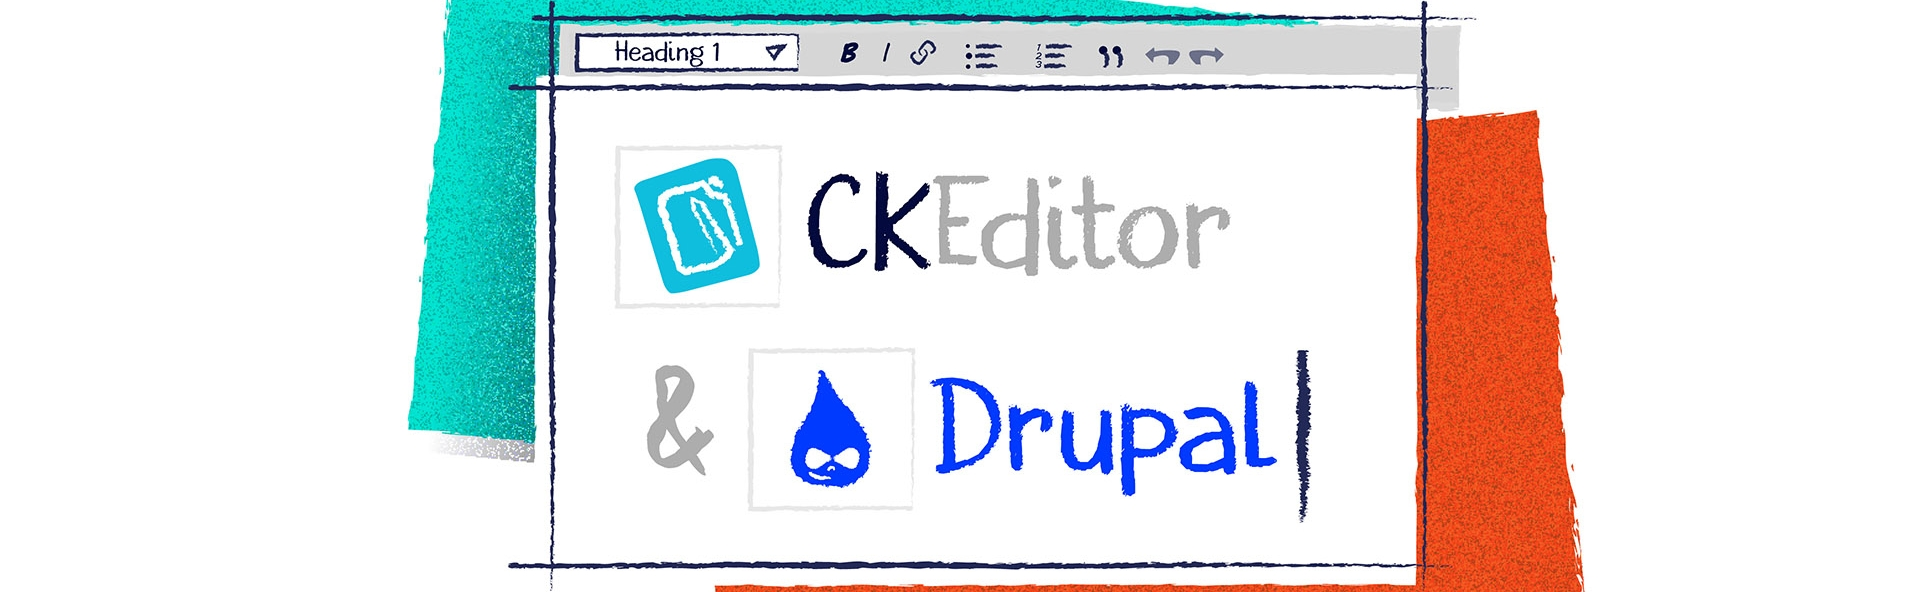 Ckeditor different toolbars